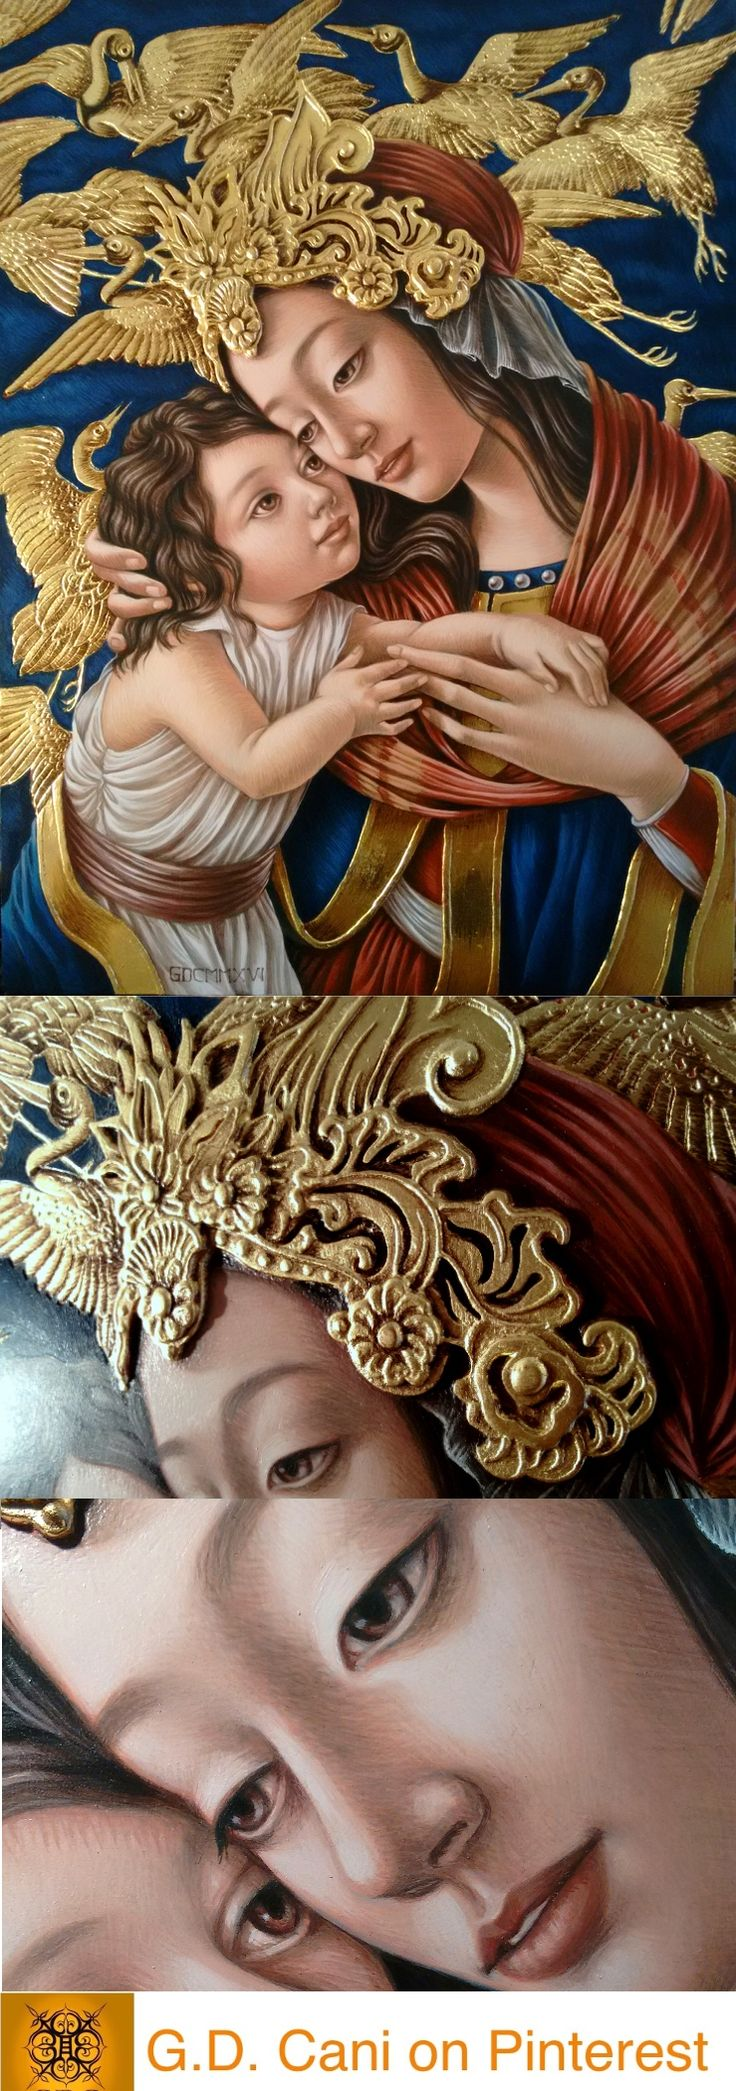 G. Dalli Cani - Nativity with Cranes - 2015-2016. Oil paint and 23CT gold leaf. Figures partially appropriated from Botticelli; head ornament inspired by Vietnamese Le Dynasty. Close up of 3D elements and eyes.